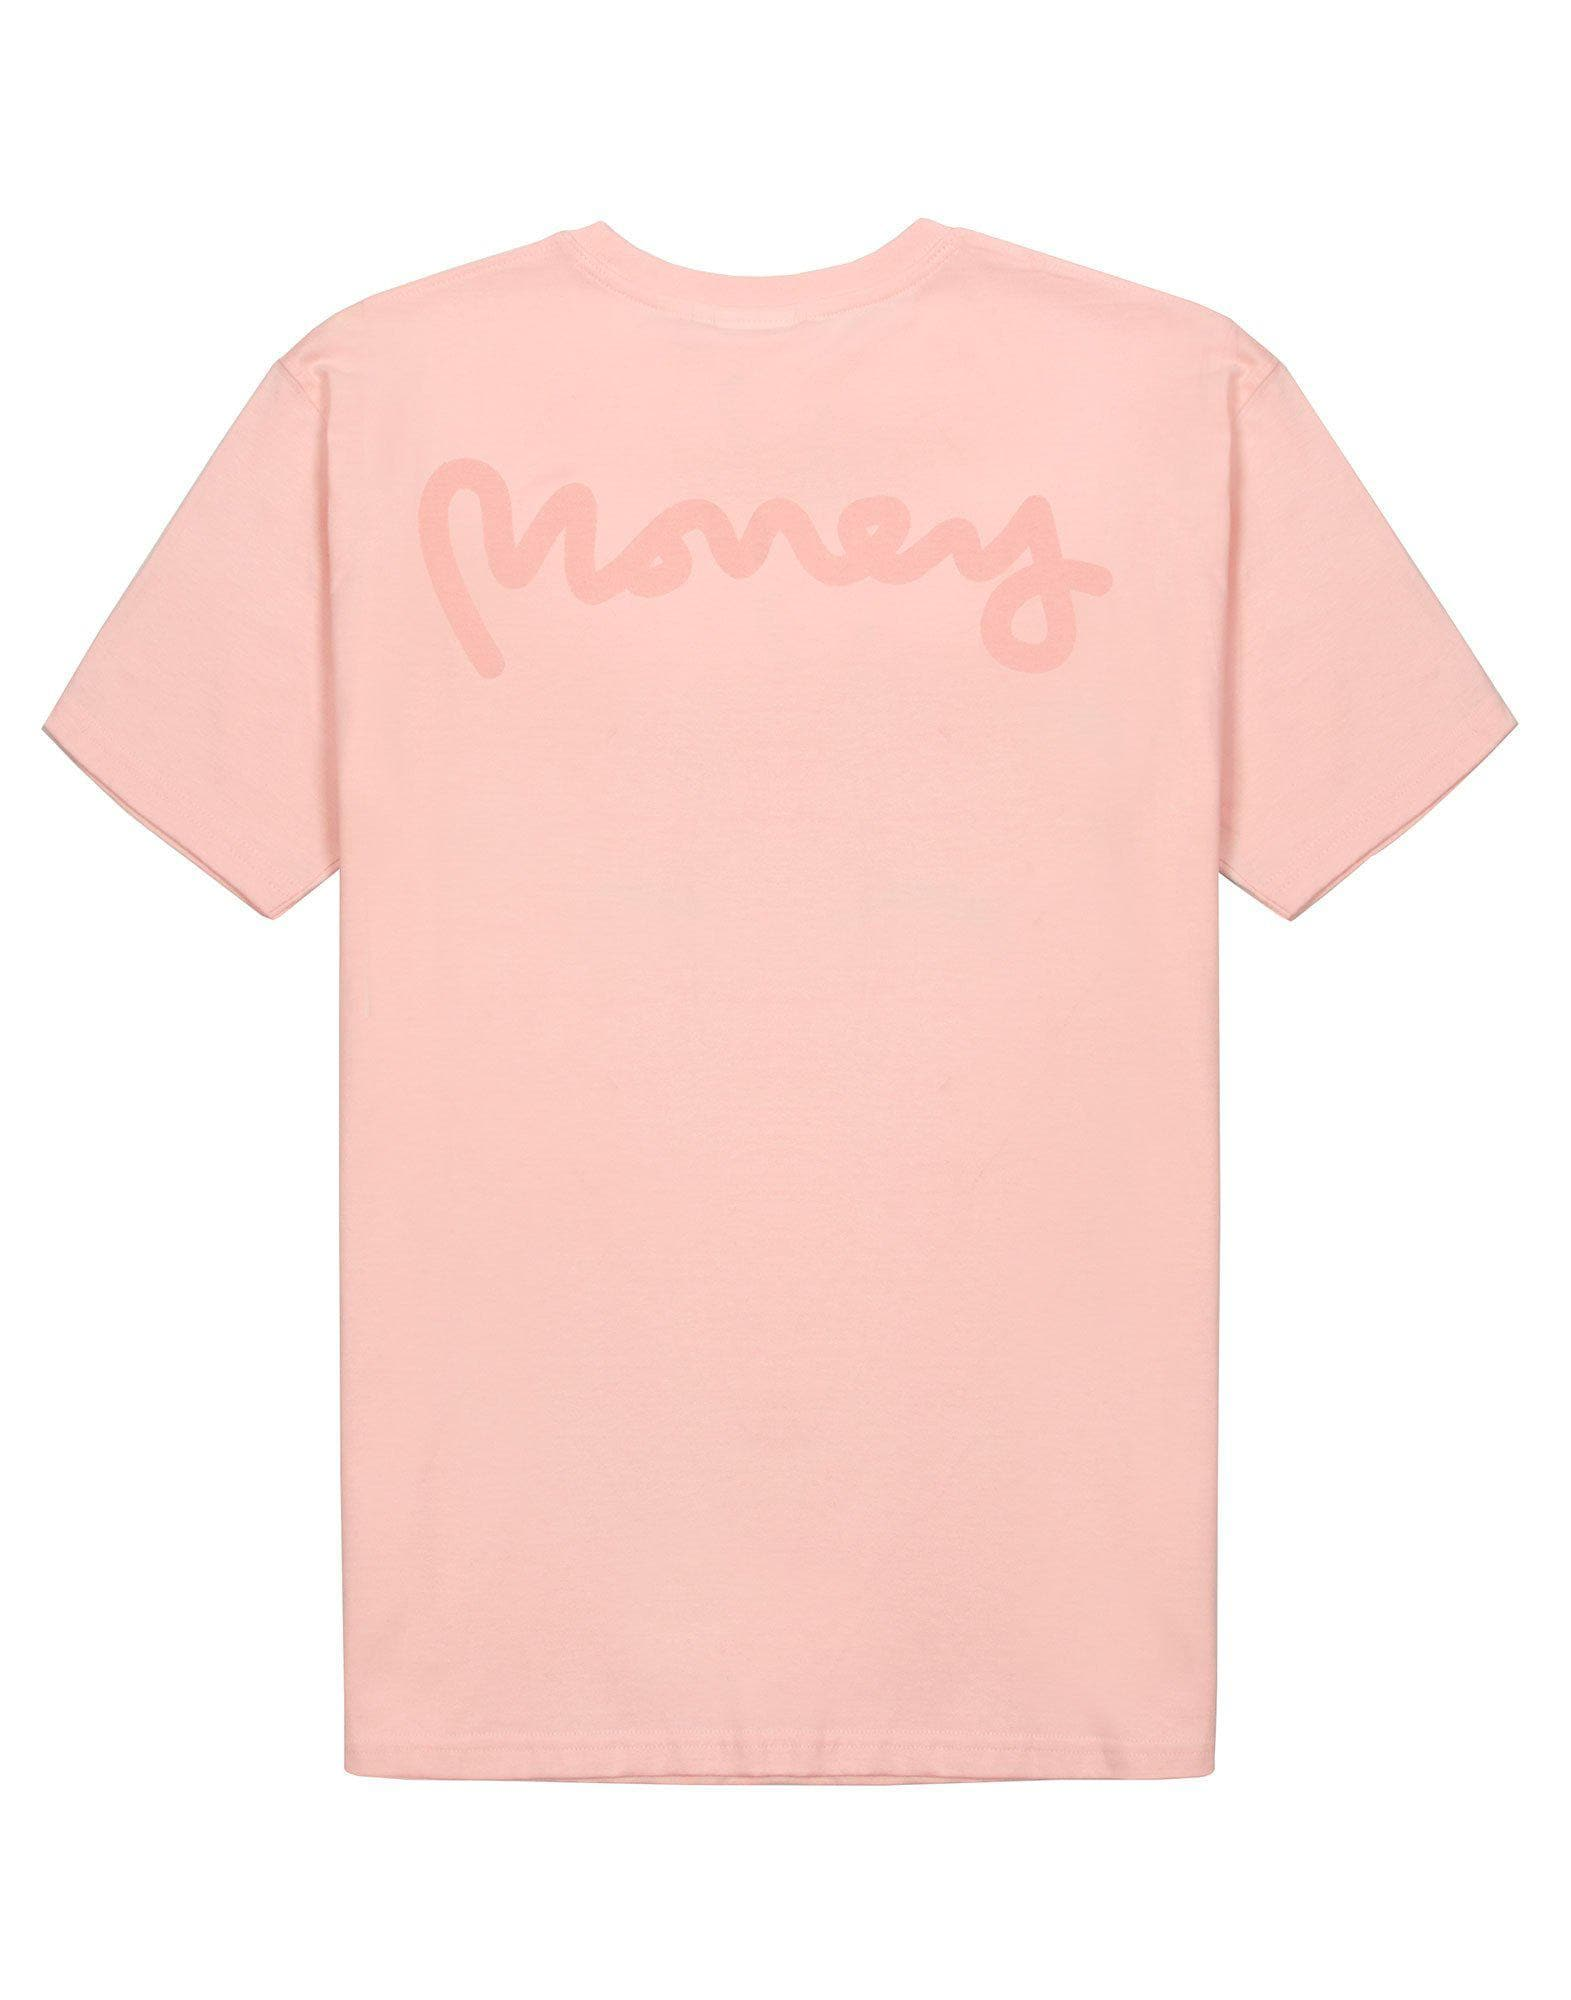 Money Clothing Zamac Tee